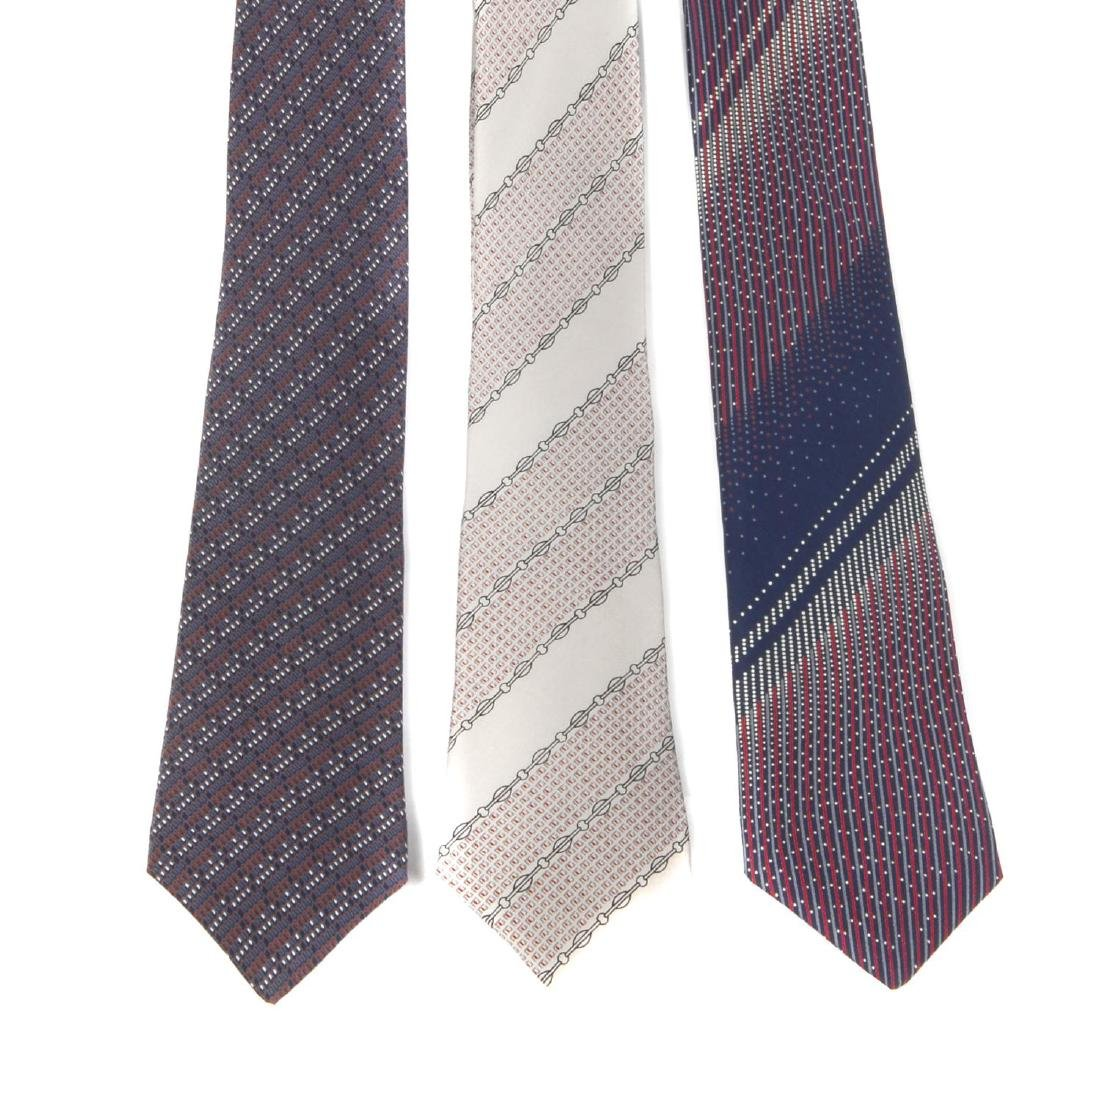 PIERRE BALMAIN - six ties. To include two blue ties, a